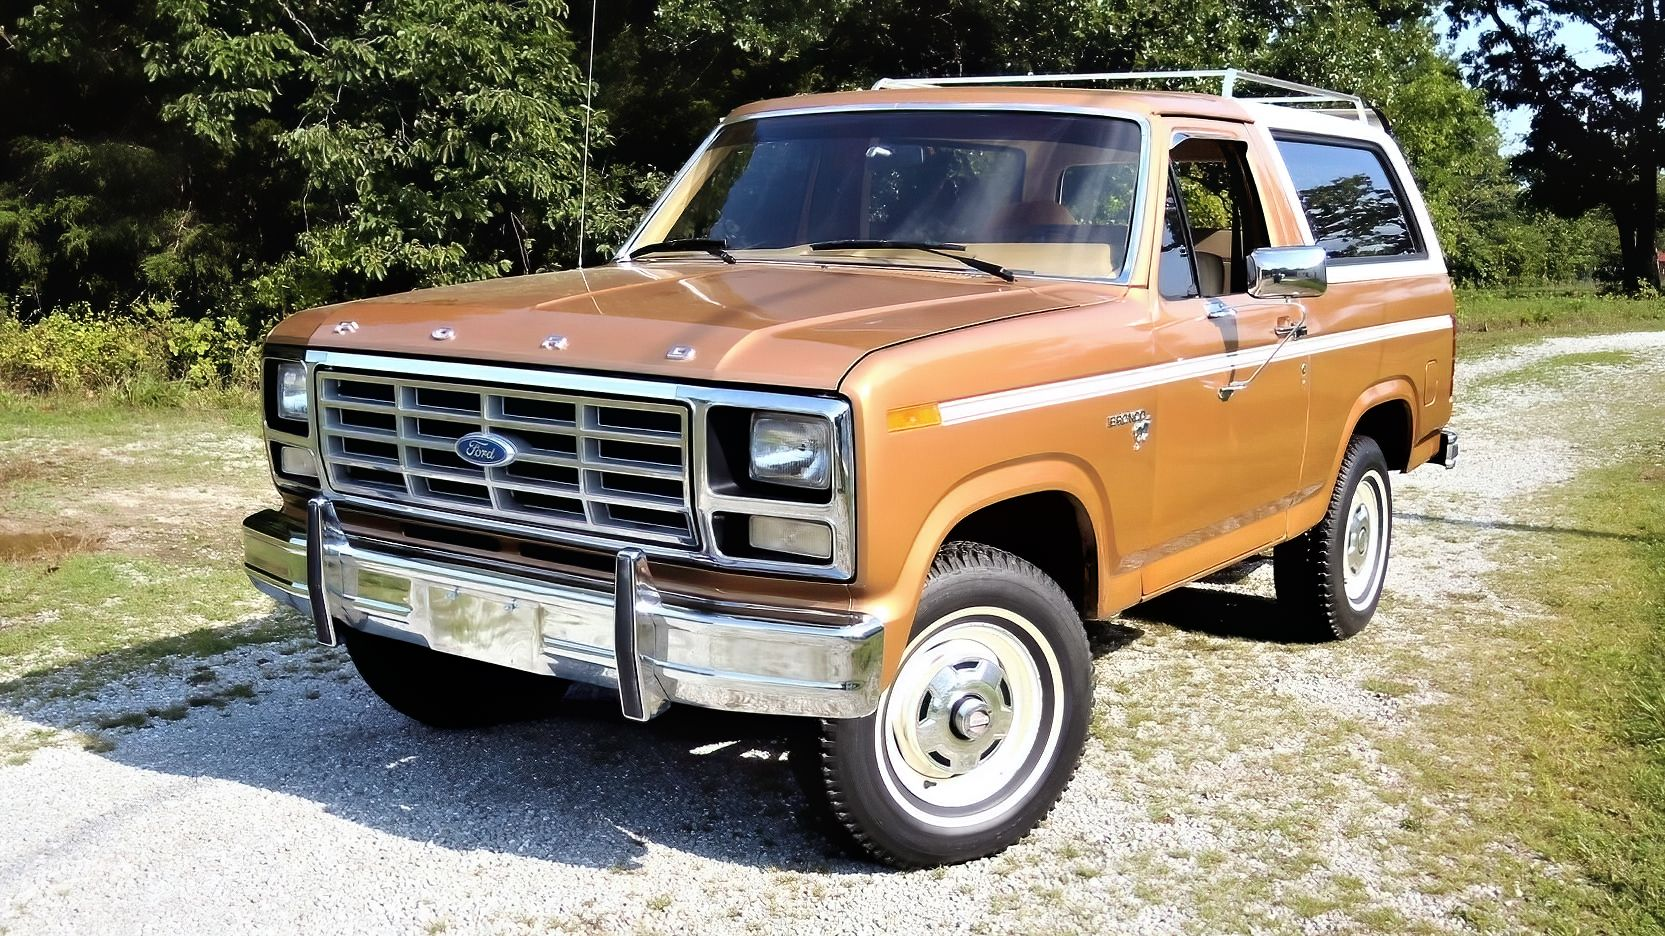 1980 Ford Bronco in 2020 Ford bronco, 4speed, Bronco